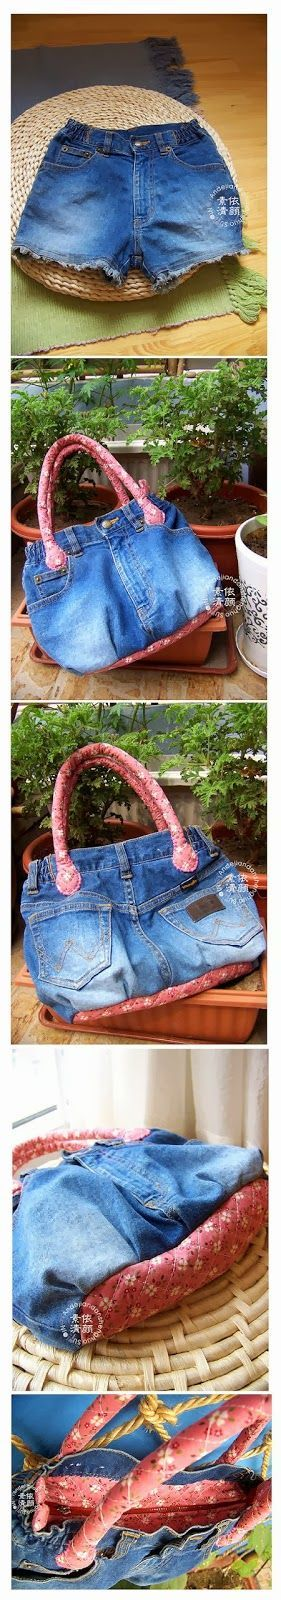 My DIY Projects: Recycling Jeans Into a Handbag